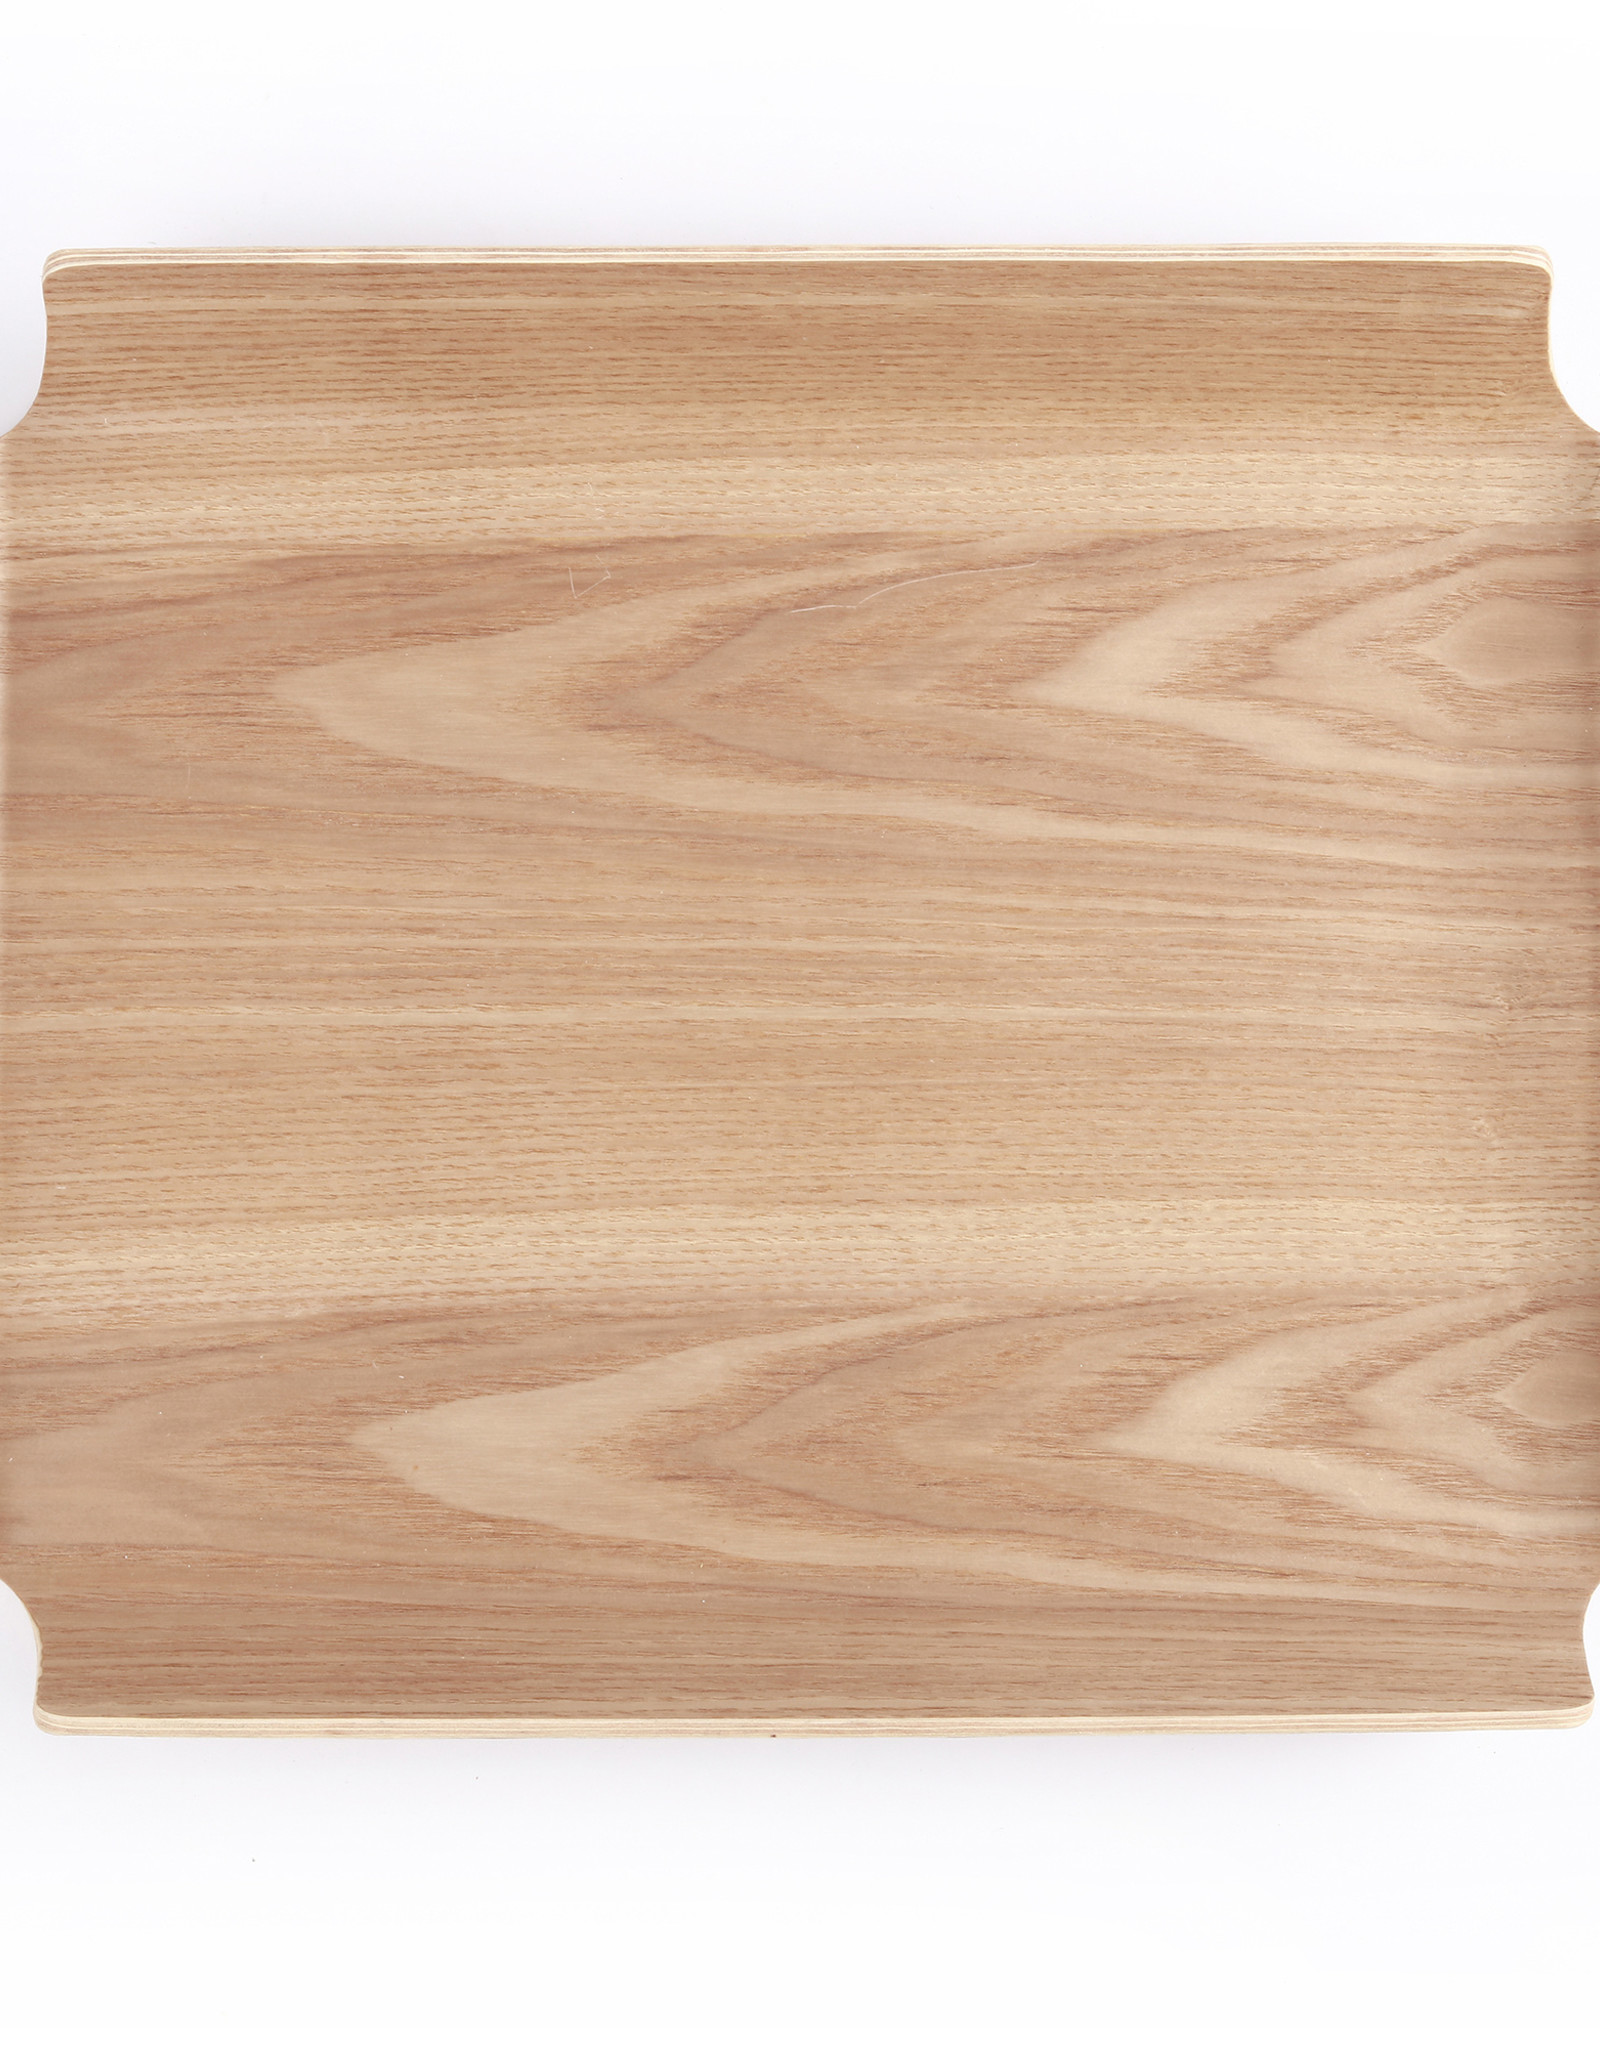 """Cathay Basket Cathay Bentwood Tray 15.75"""" x 11.5"""" x 2""""H 10-2454"""